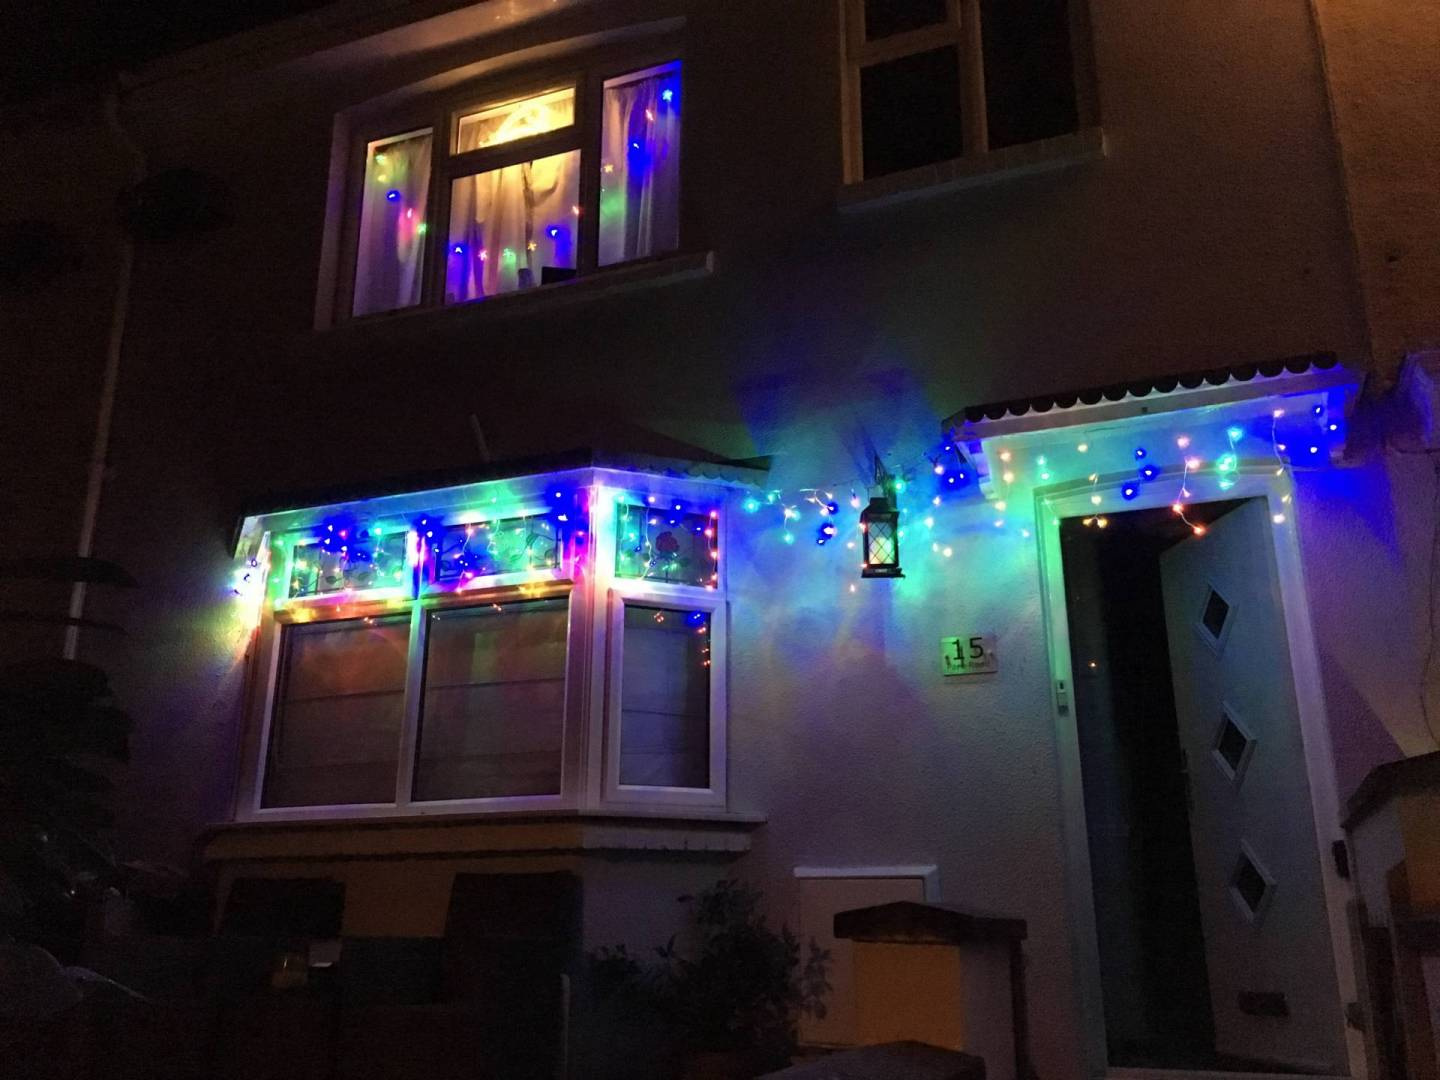 The Outdoor Festive Touch On A Budget